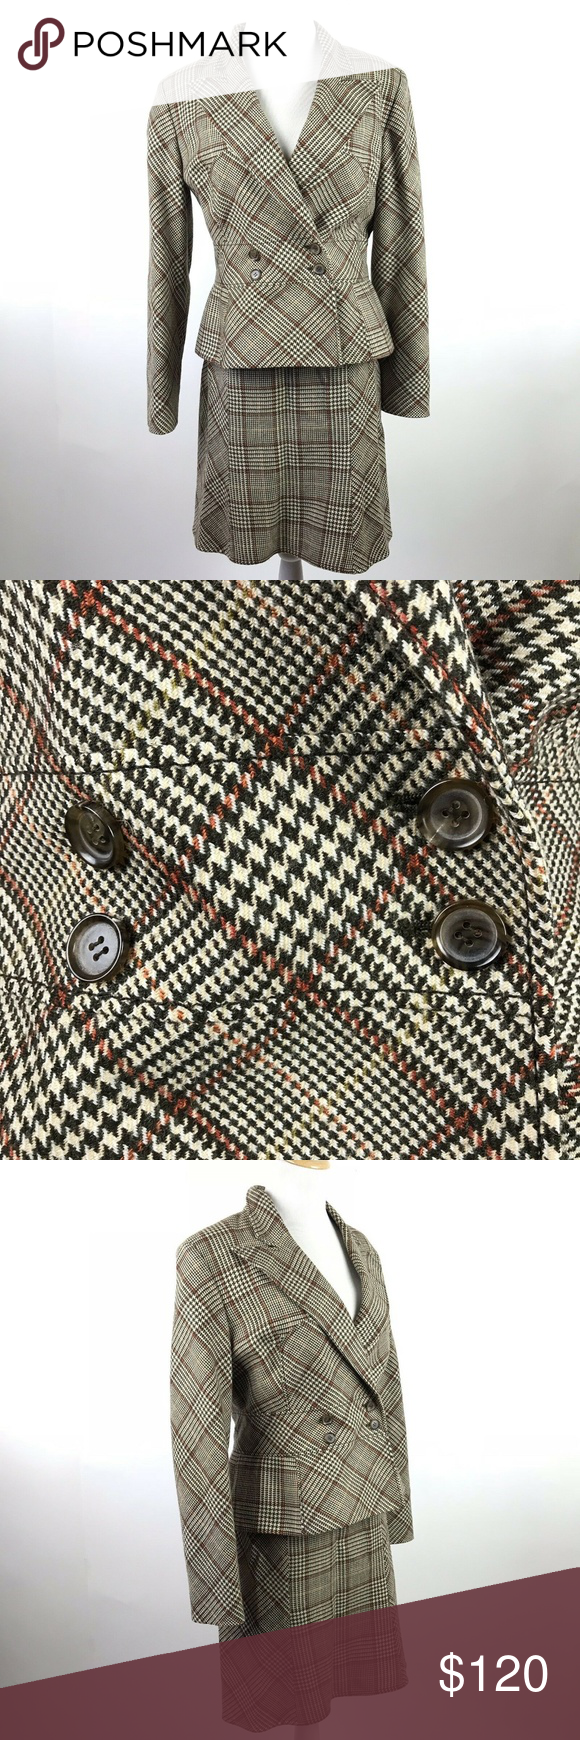 78efcf314 Valentino Skirt Suit Brown Plaid Houndstooth Wool Vintage Valentino brown  and cream 100% wool skirt